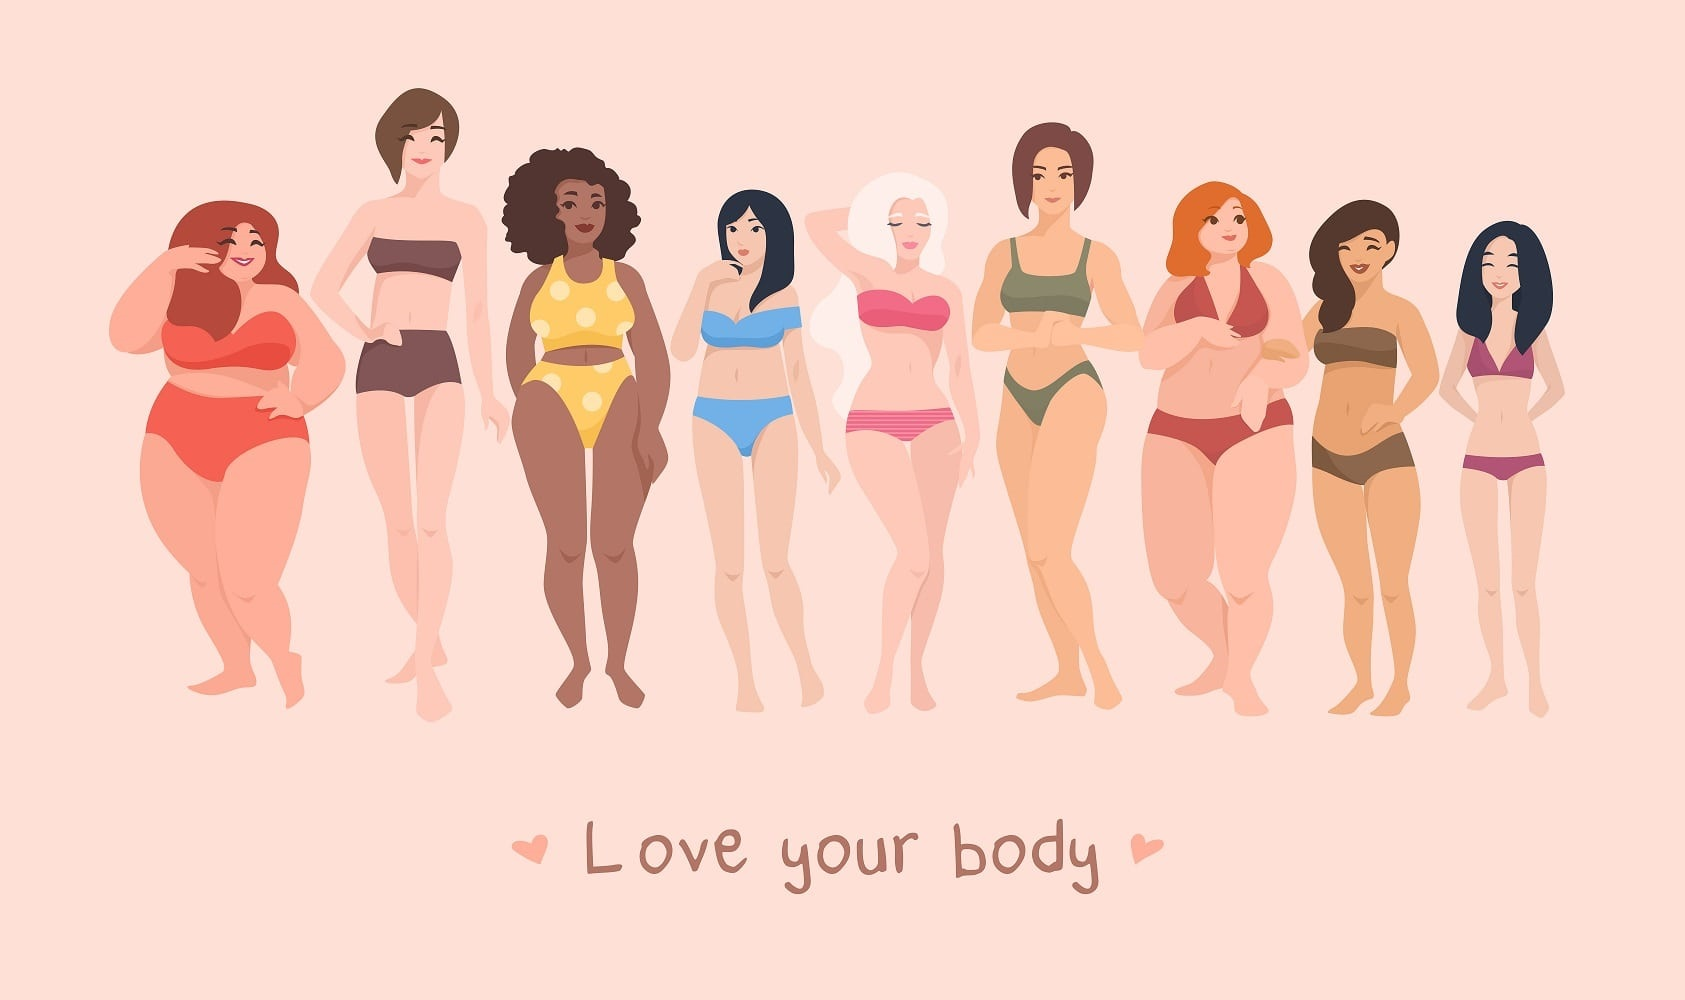 Nutrition|Weight Loss|Eating Psychology body-positivity-1 Healthy Eating mindful eating Weight Loss